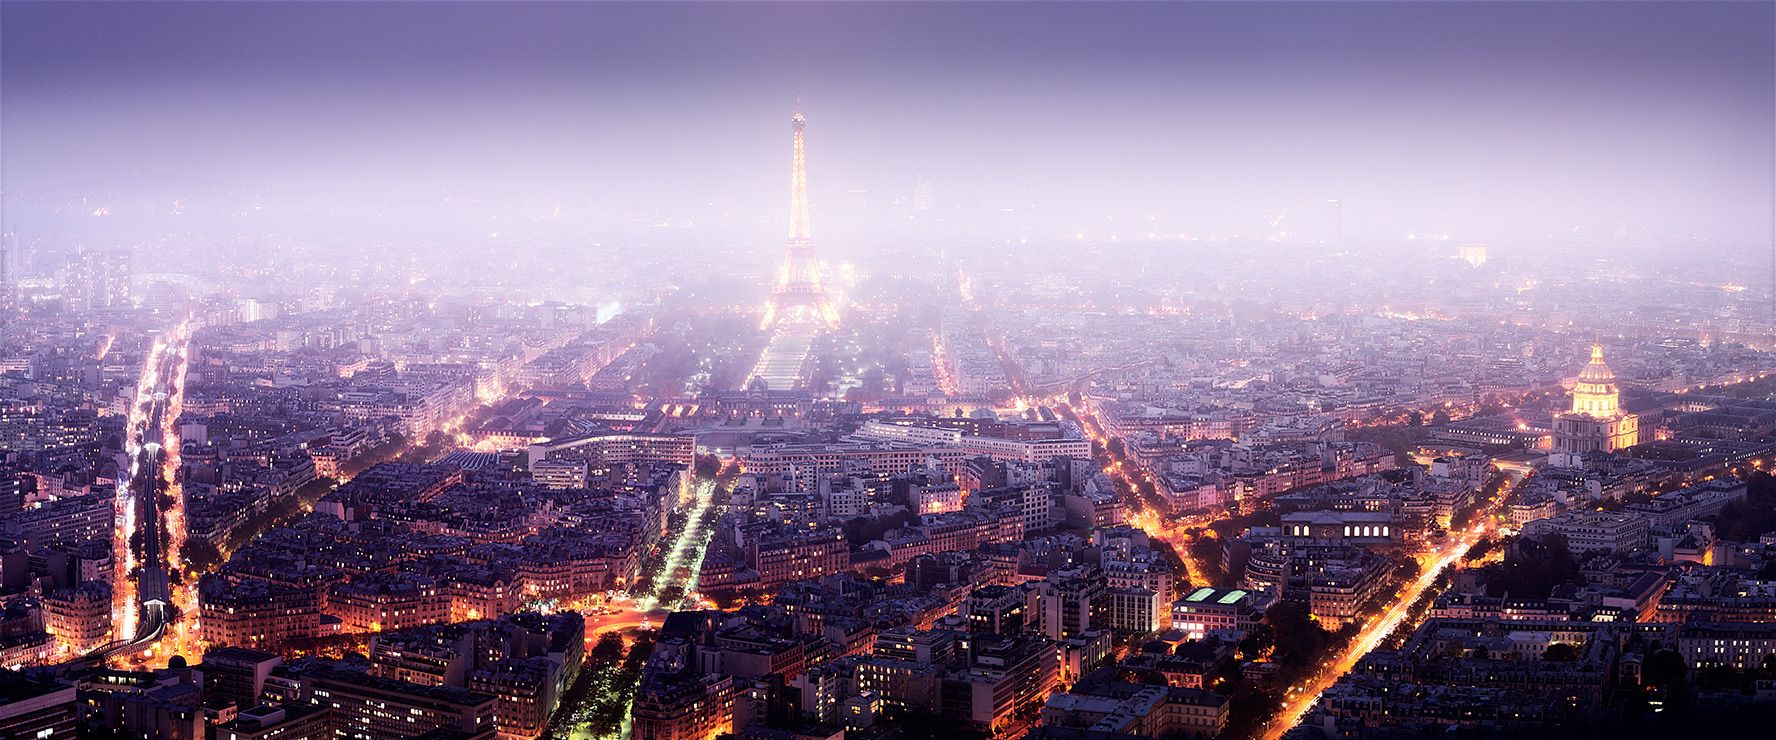 ONE NIGHT IN PARIS, Archival Pigment Print